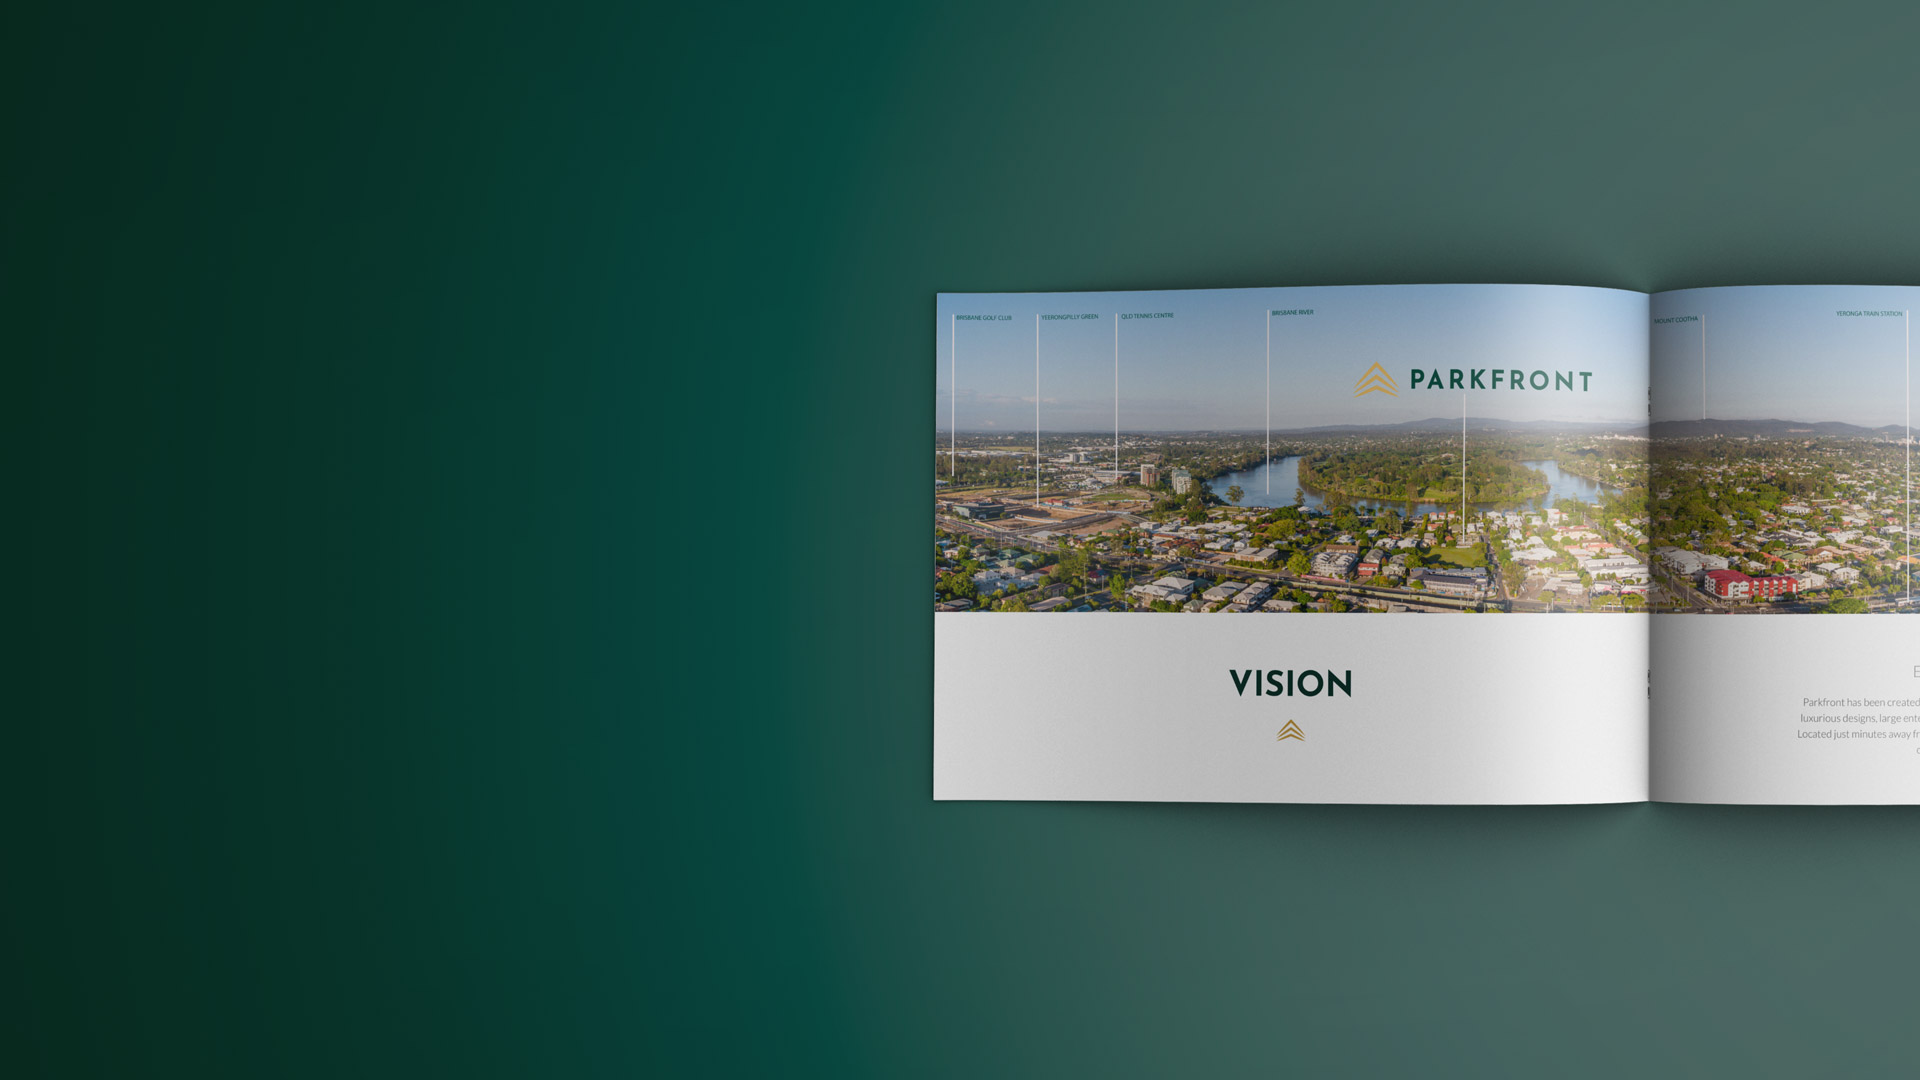 Parkfront Vision Page In Book